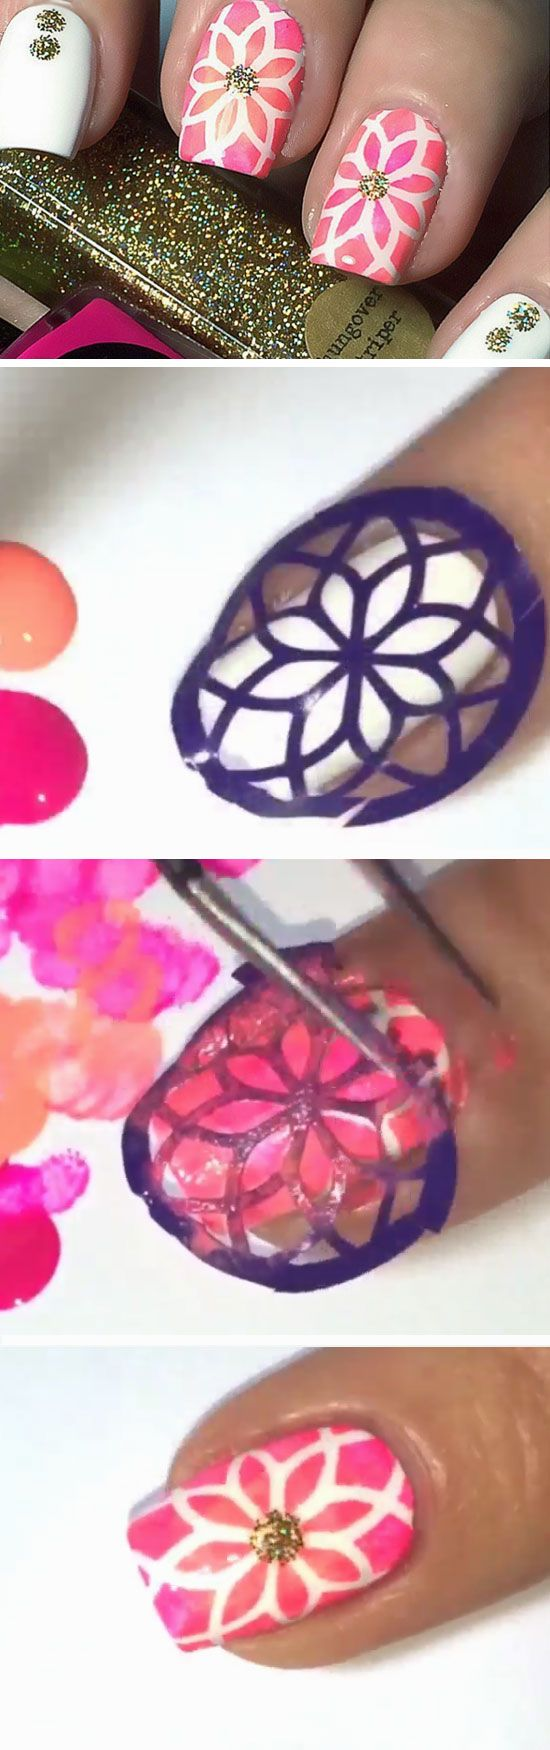 Stained Glass Effect | DIY Beach Nail Art Ideas for Teens